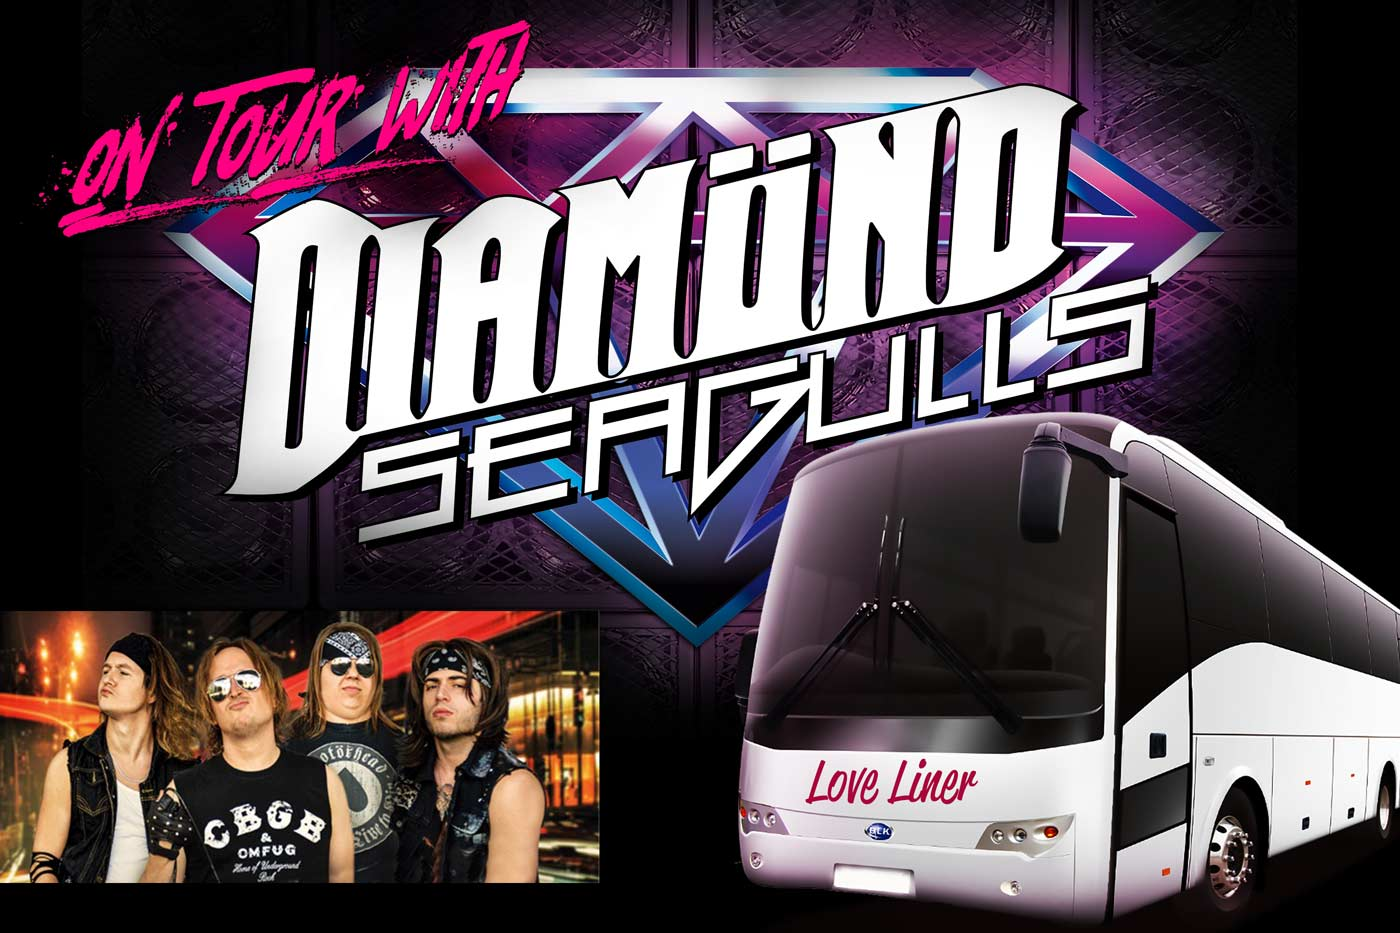 Diamond-Seagulls-Love-Liner-Bus-Band